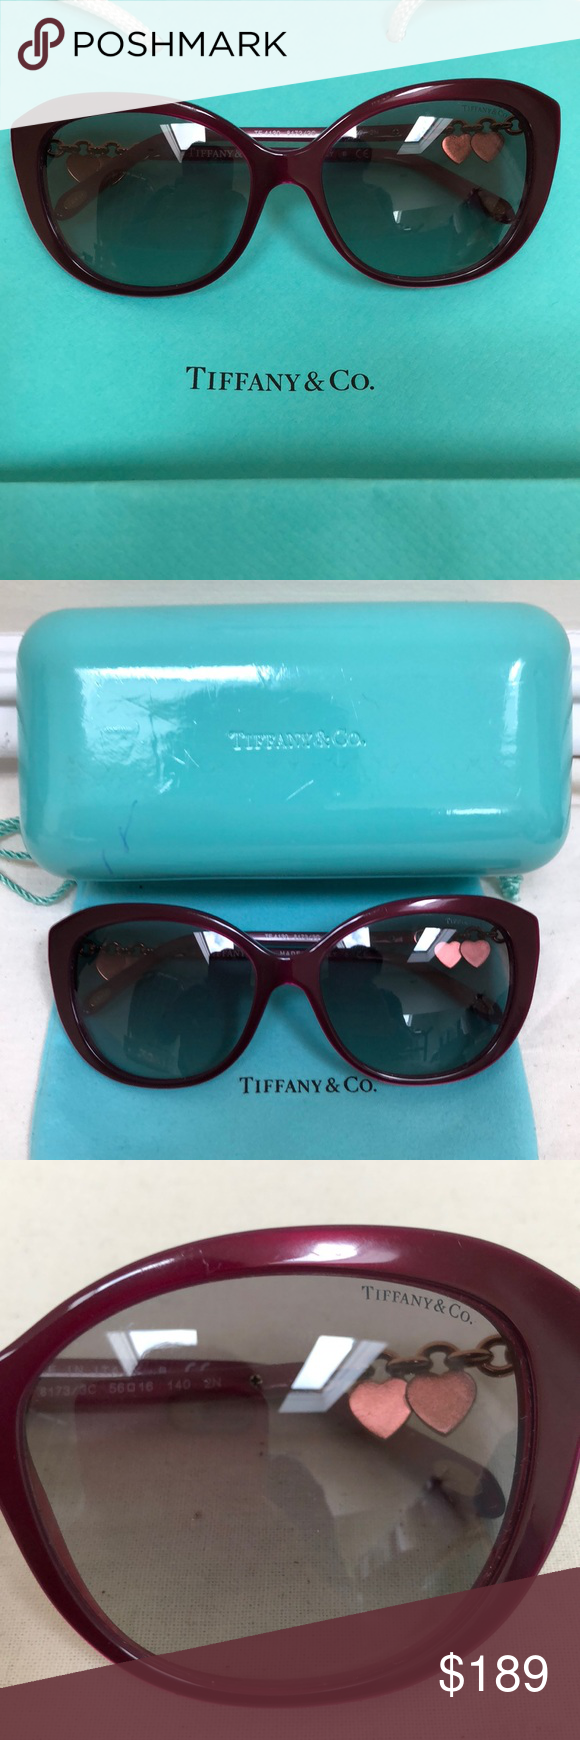 76a962f3be7a 🔴Authentic Tiffany   Co Sunglasses 😎🔴 Great condition burgundy color  sunglasses with 2 gold hearts  Please Return To Tiffany  Co handles .